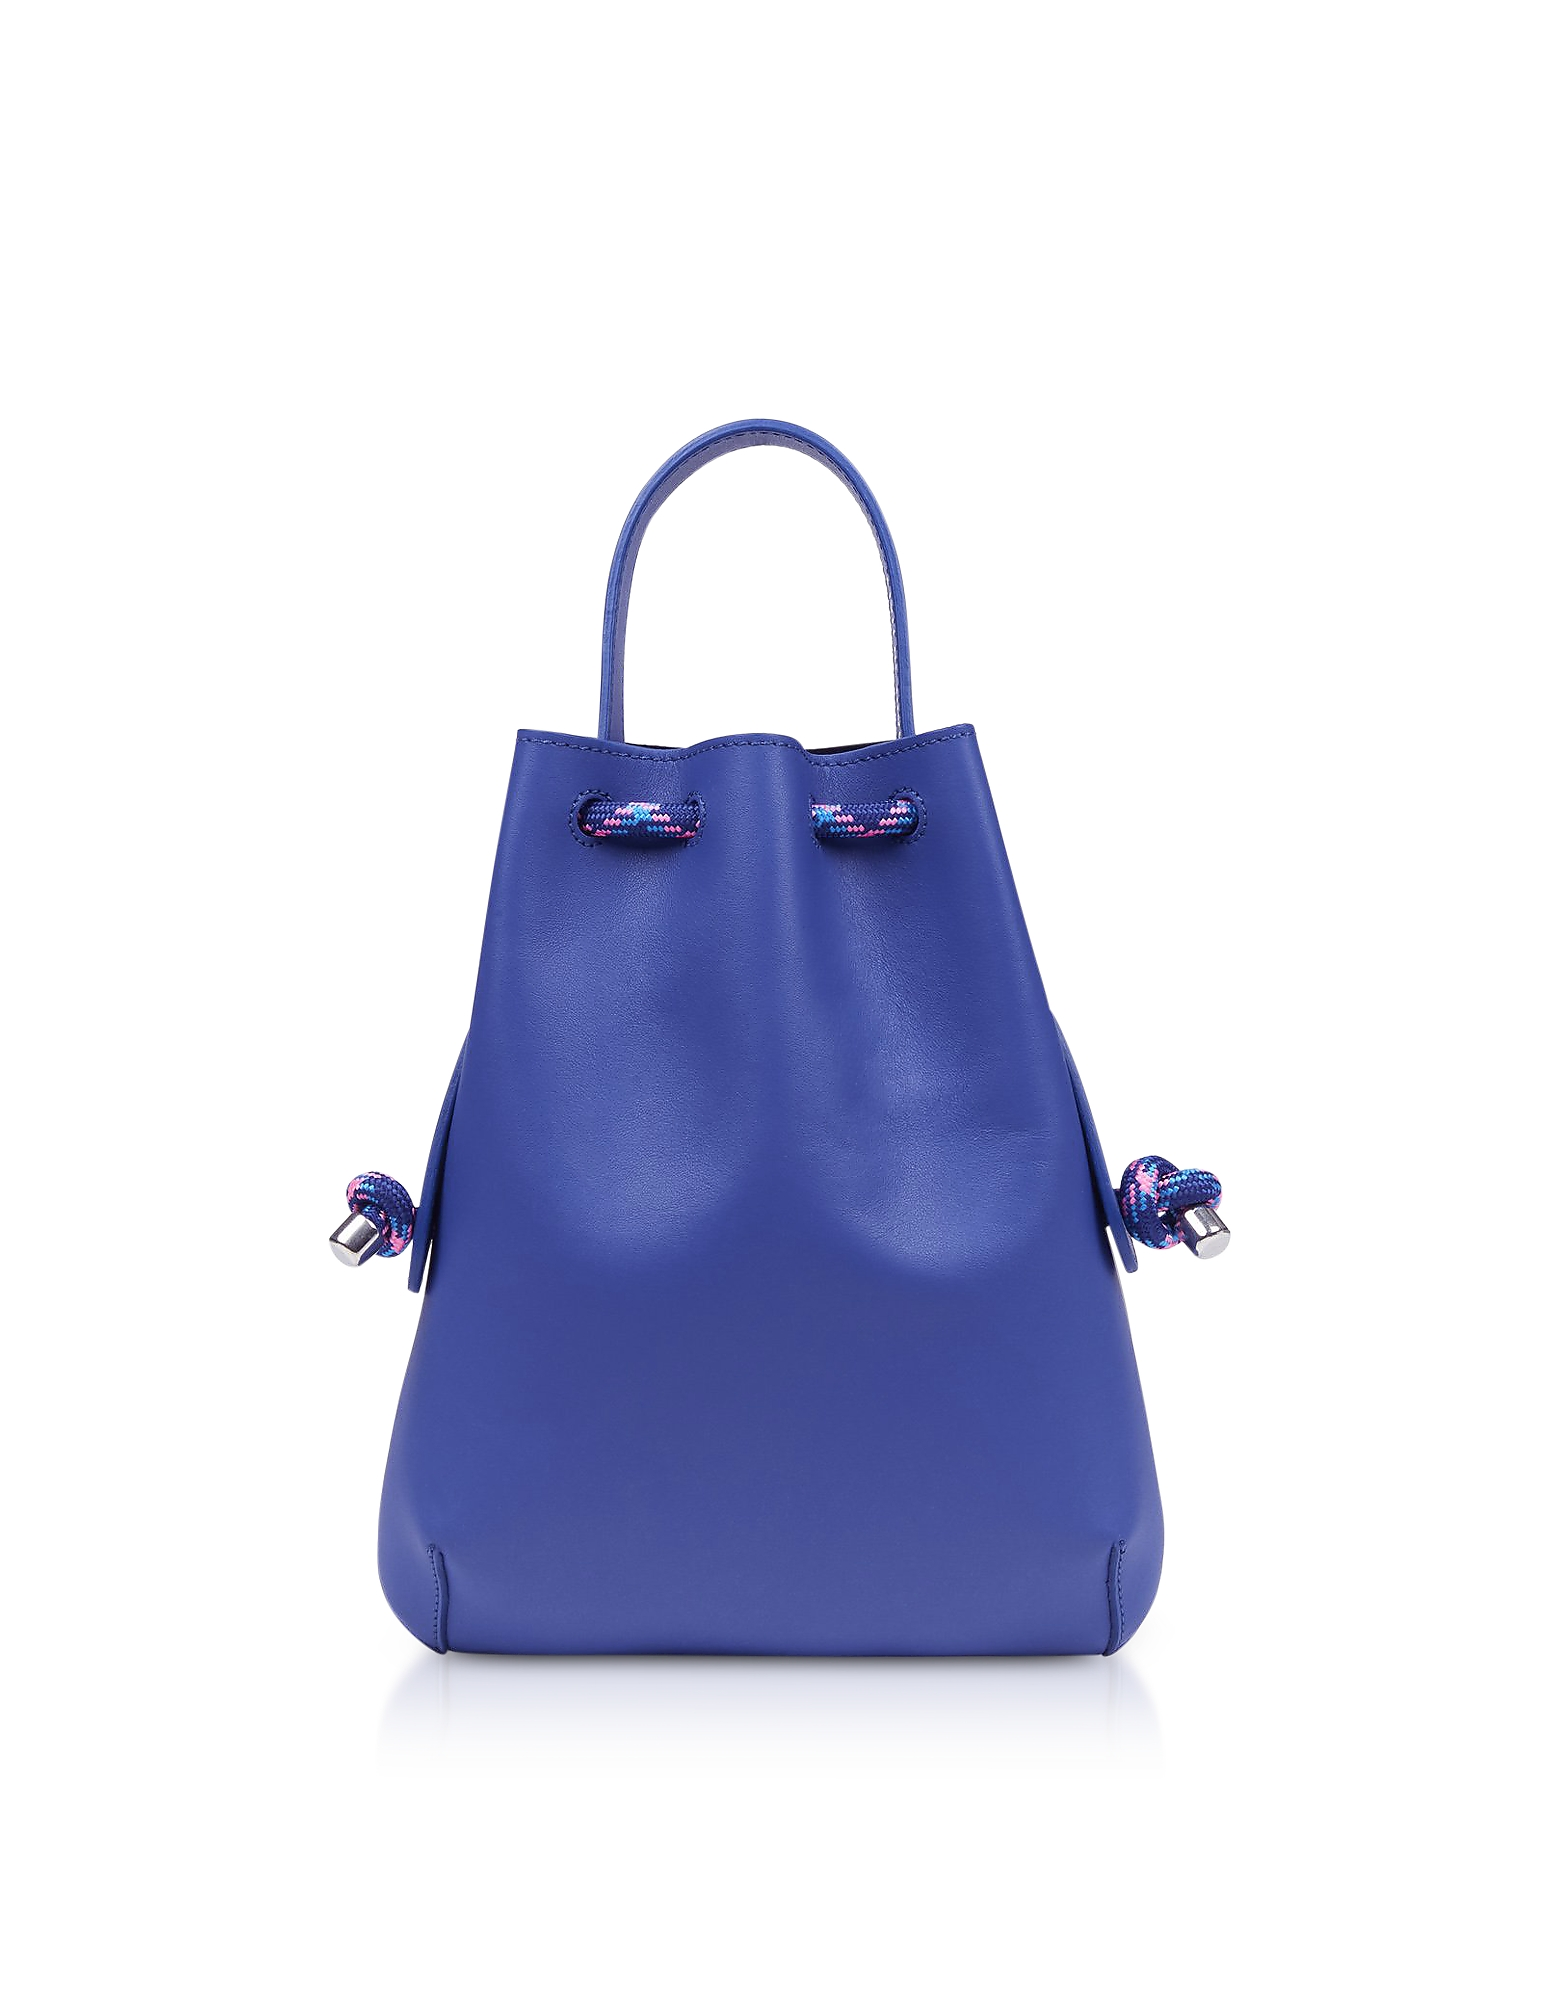 Meli Melo Designer Handbags, Majorelle Blue Briony Mini Backpack